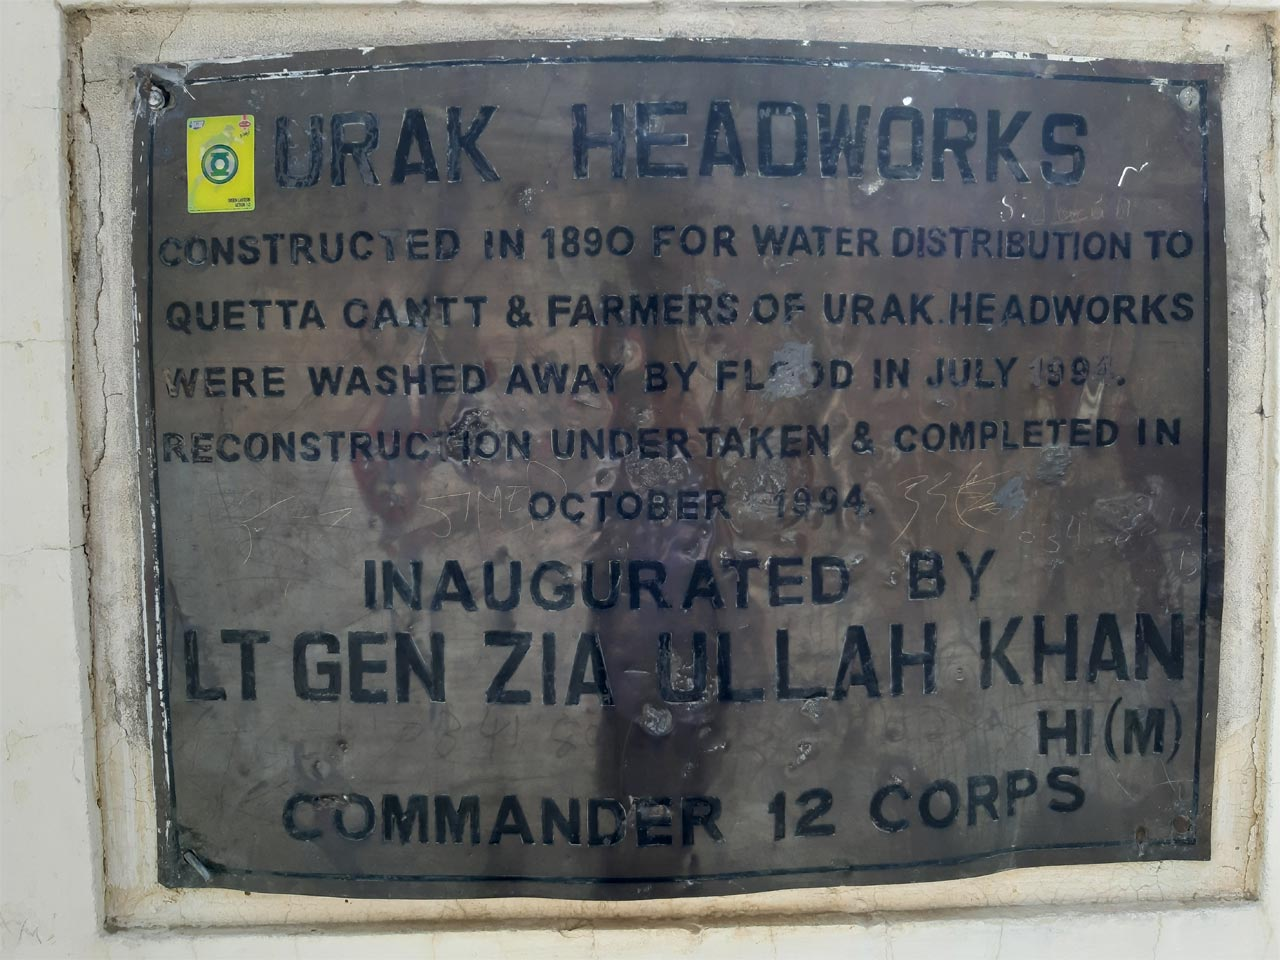 A Foundation Stone for the Reconstructed Hanna Urak.